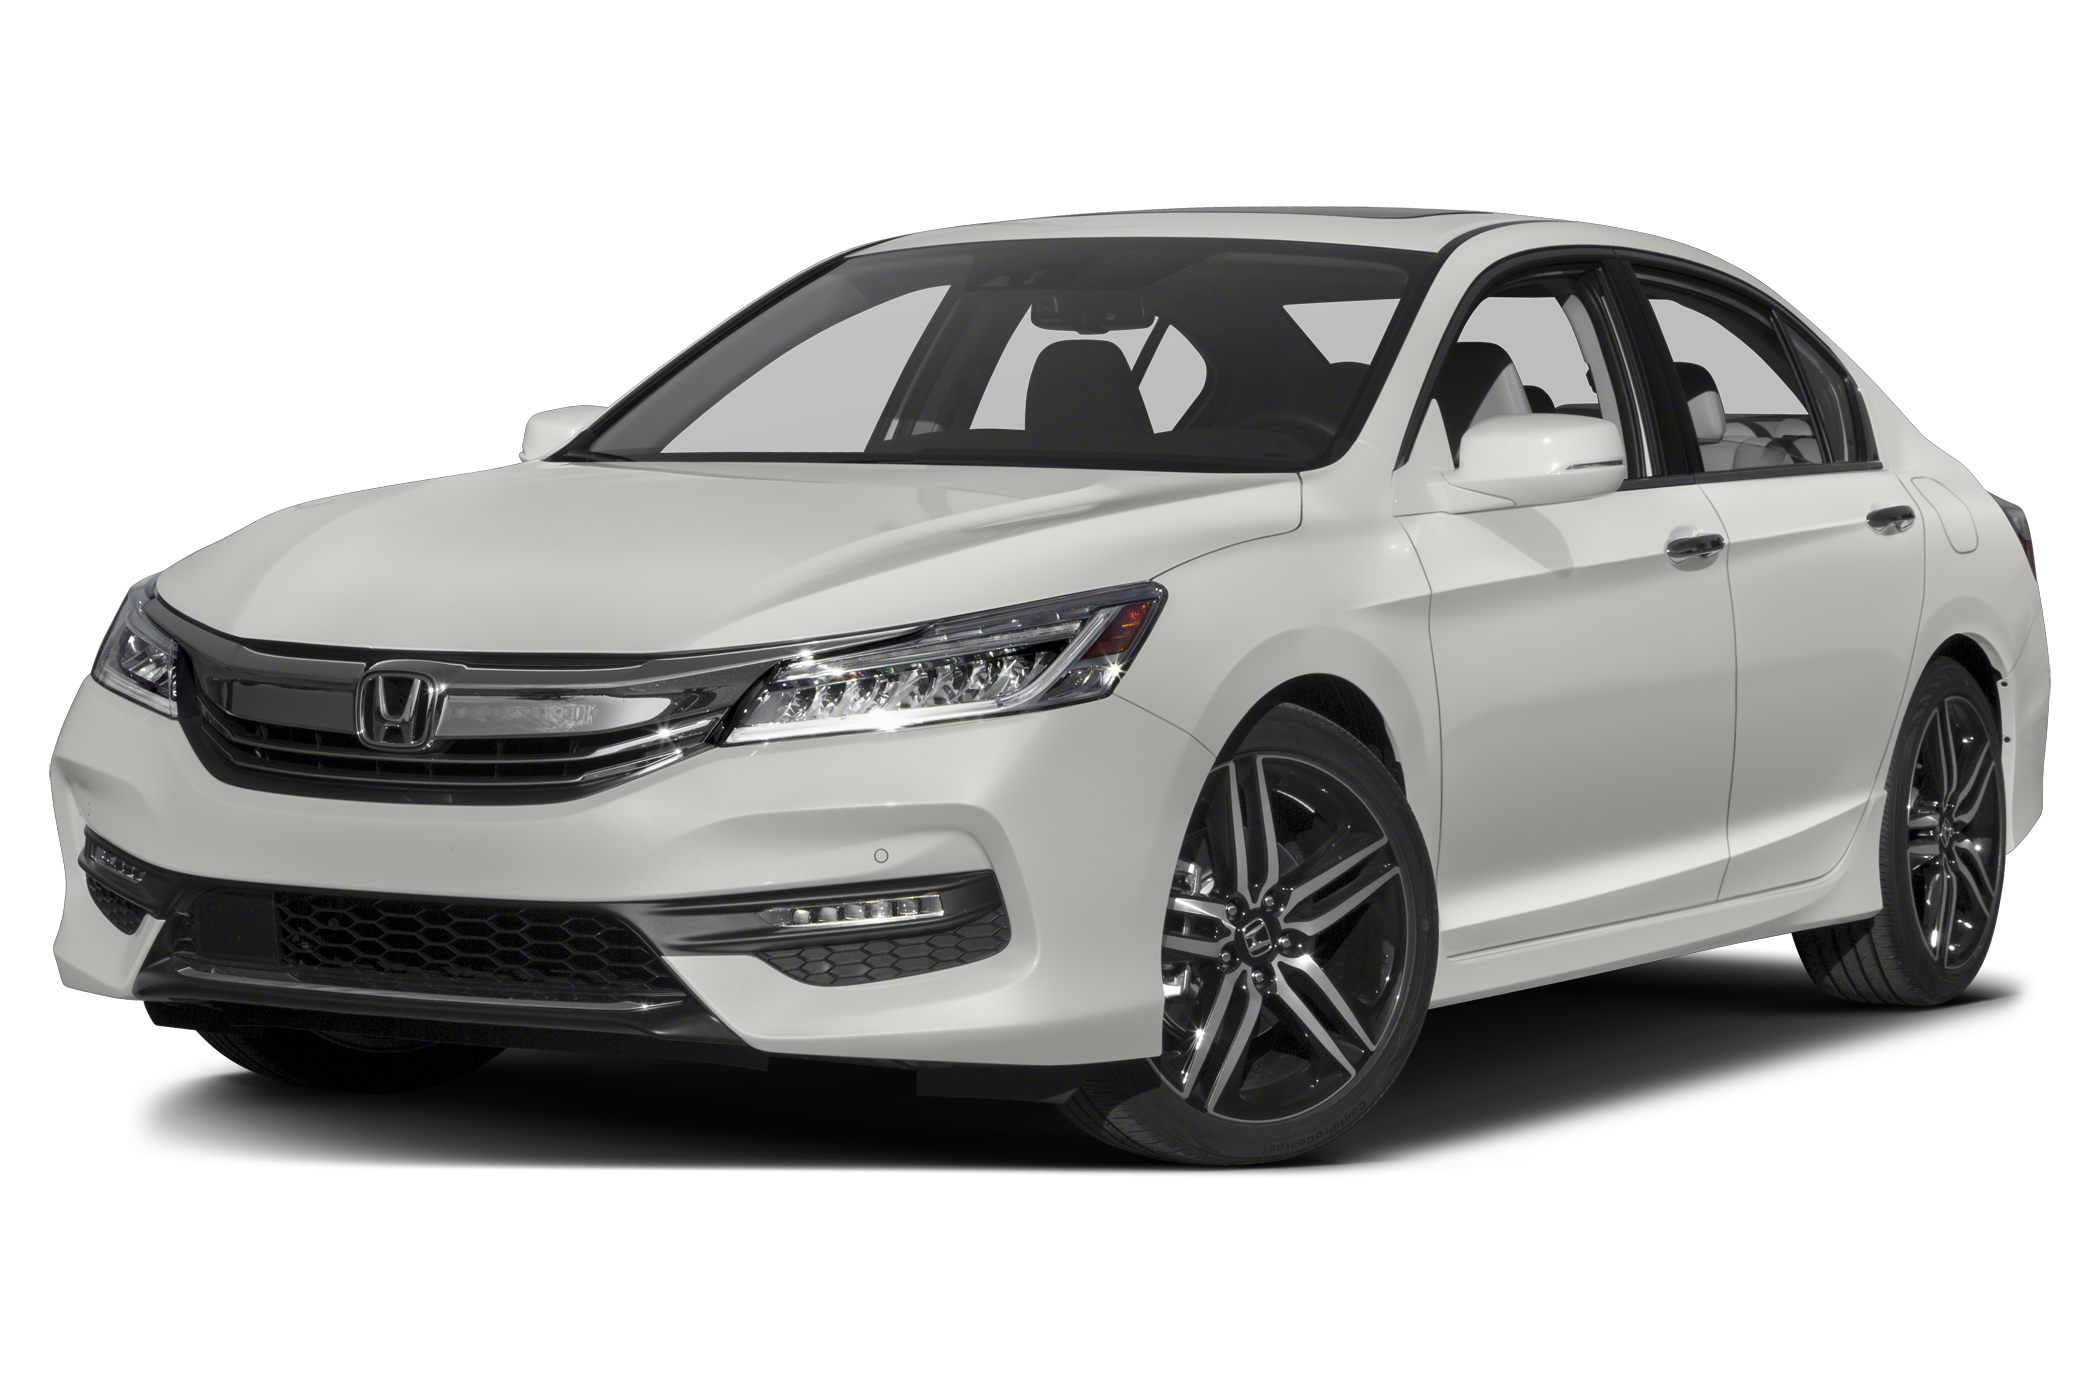 2016 Honda Accord Touring Accord Touring 4D Sedan 35L V6 SOHC i-VTEC 24V 6-Speed Automatic FW